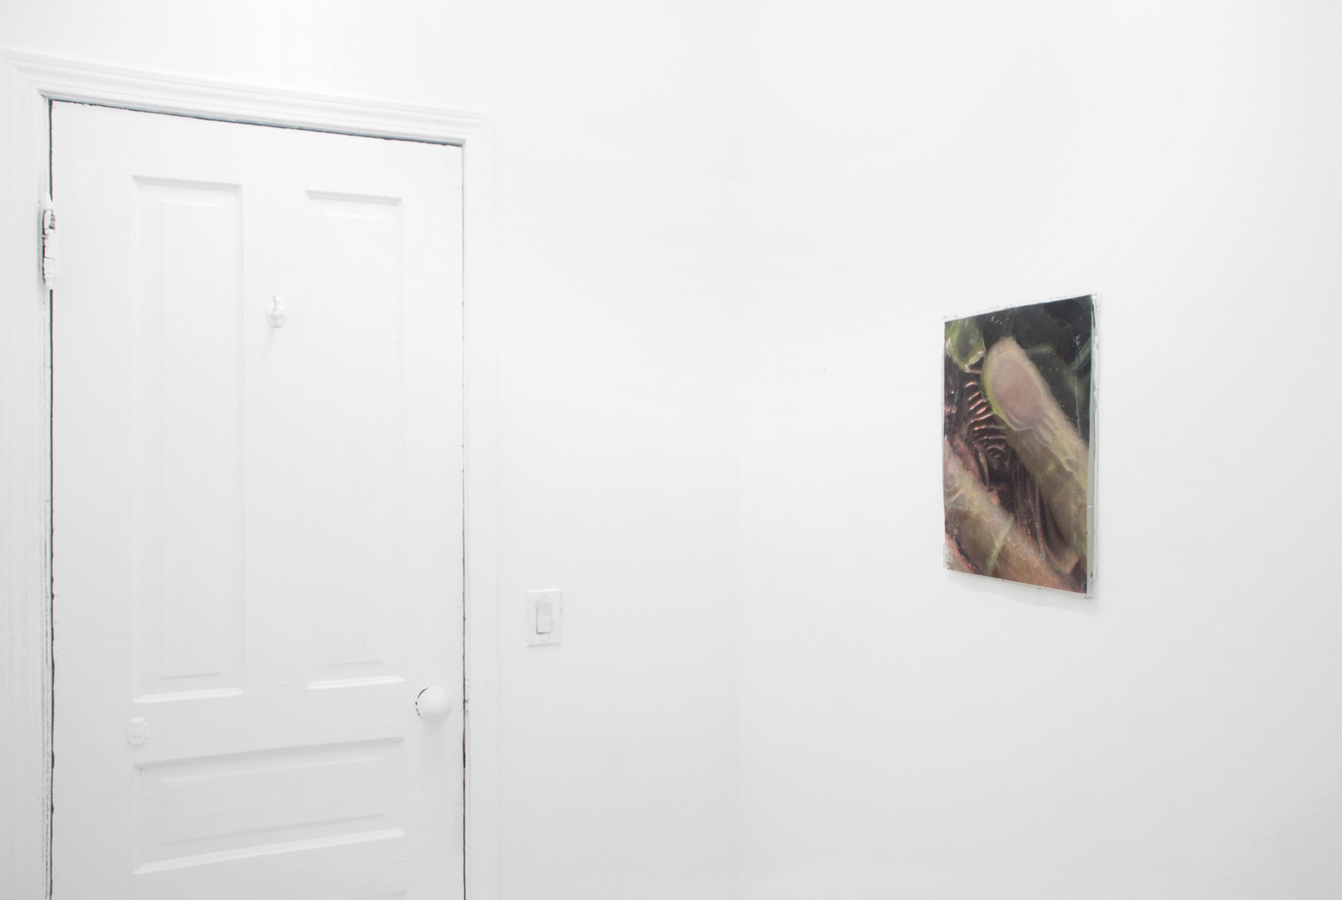 19_Lucie_Stahl_Queer_Thoughts_Install_019